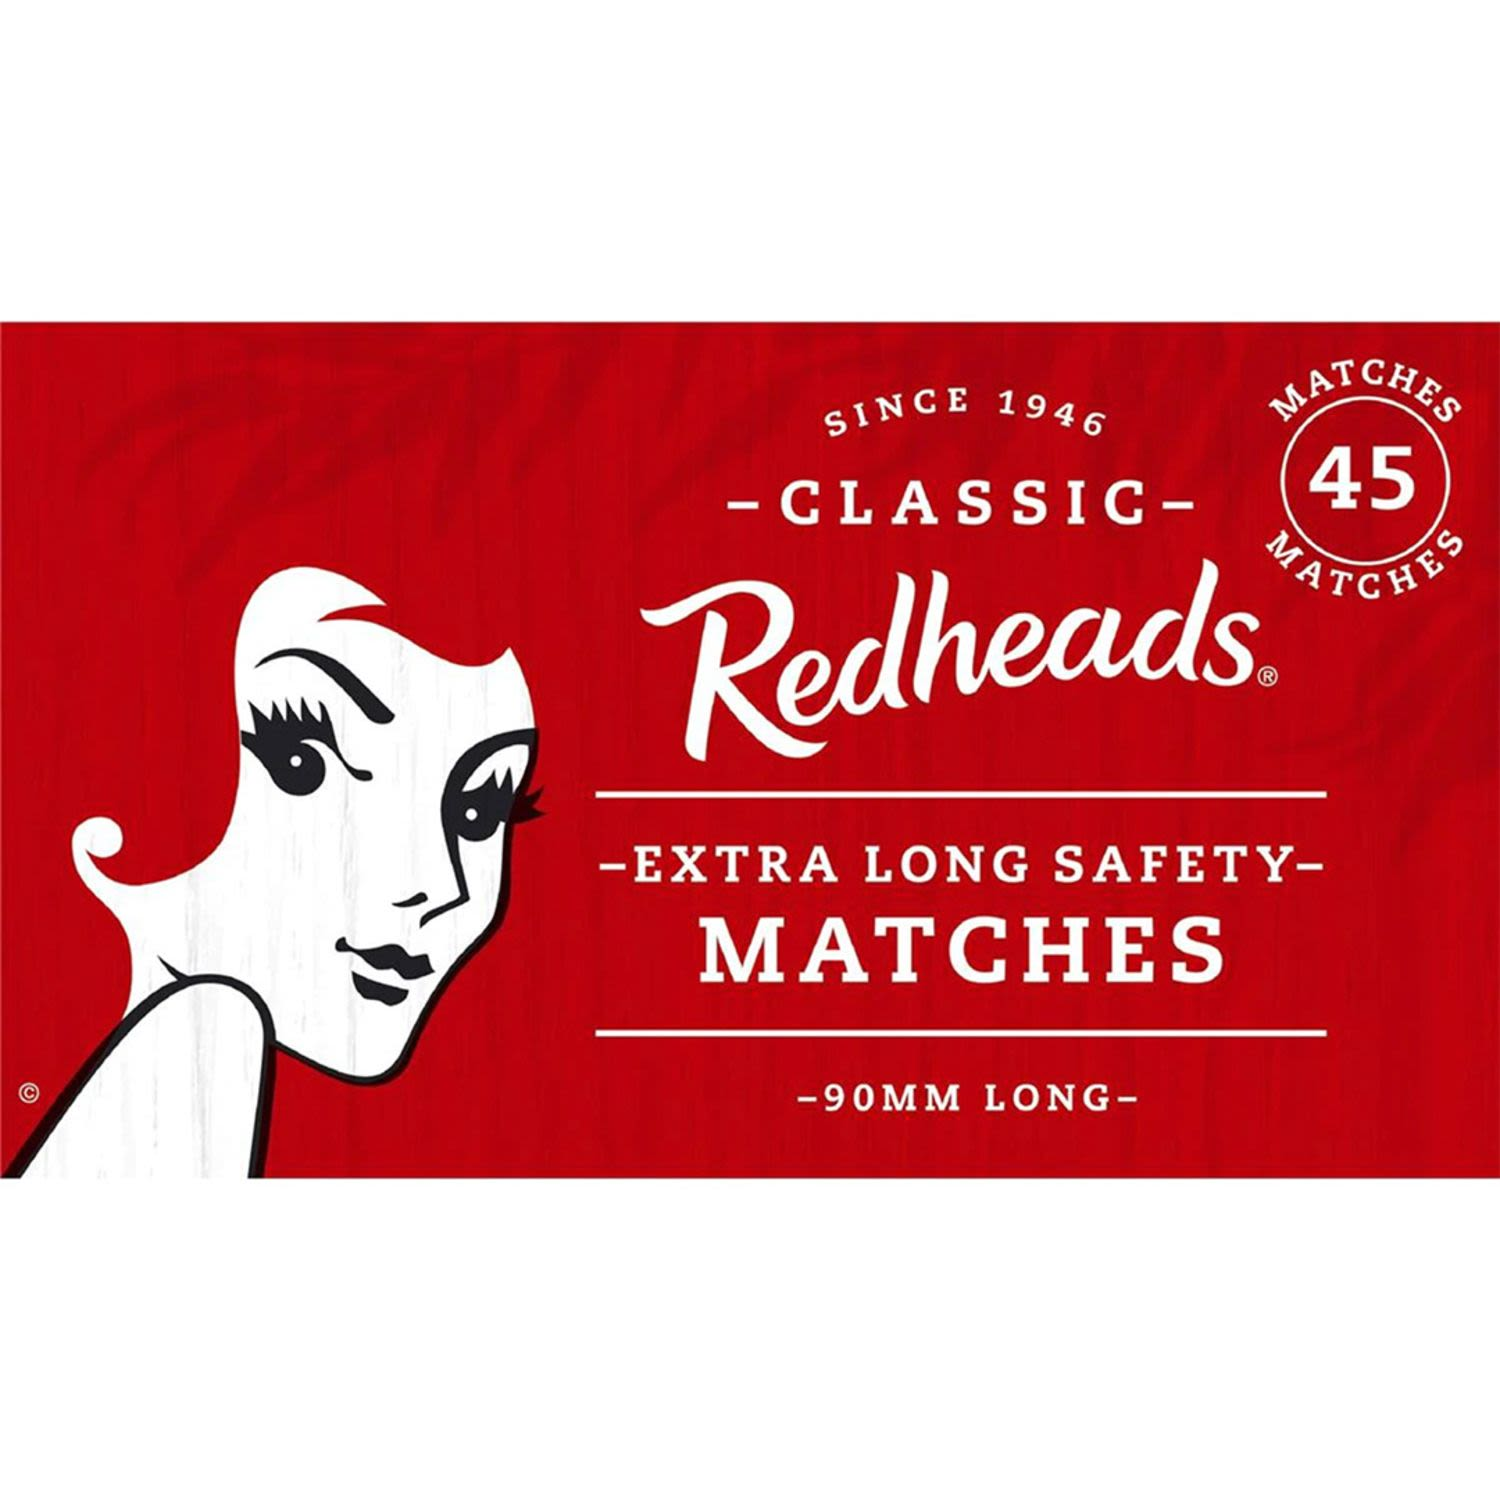 Redheads Extra Long Matches Extra Long, 45 Each